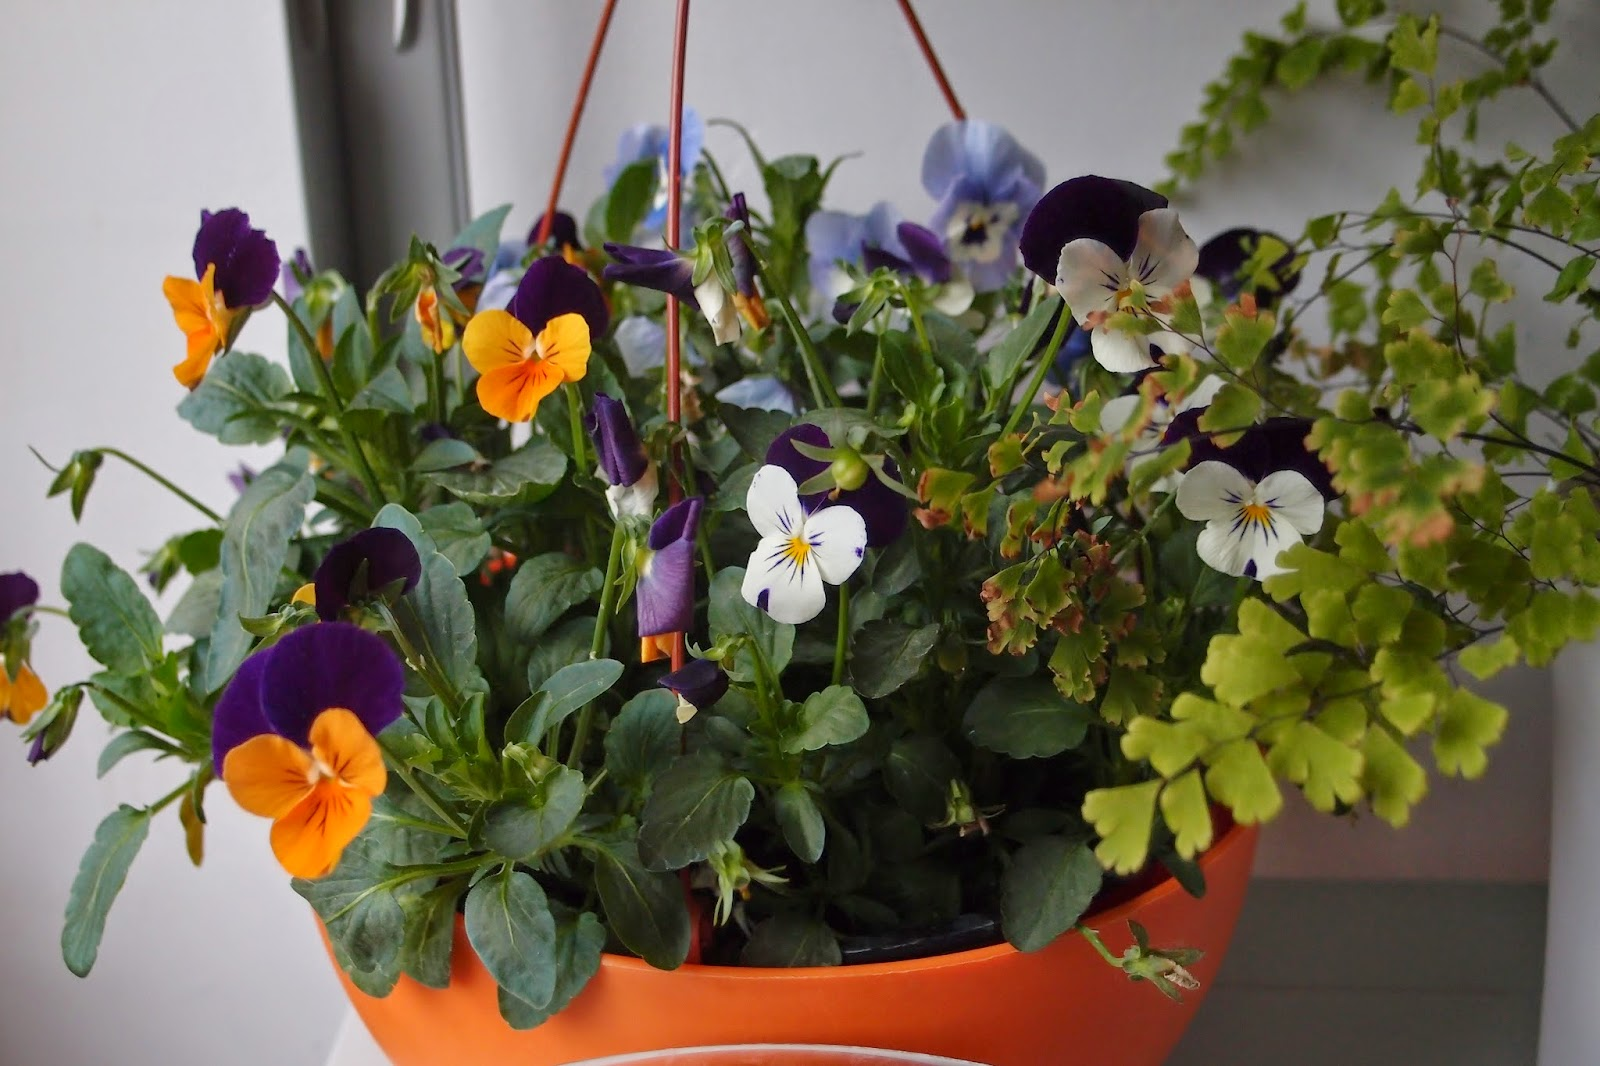 my violas - colrfil and vivid